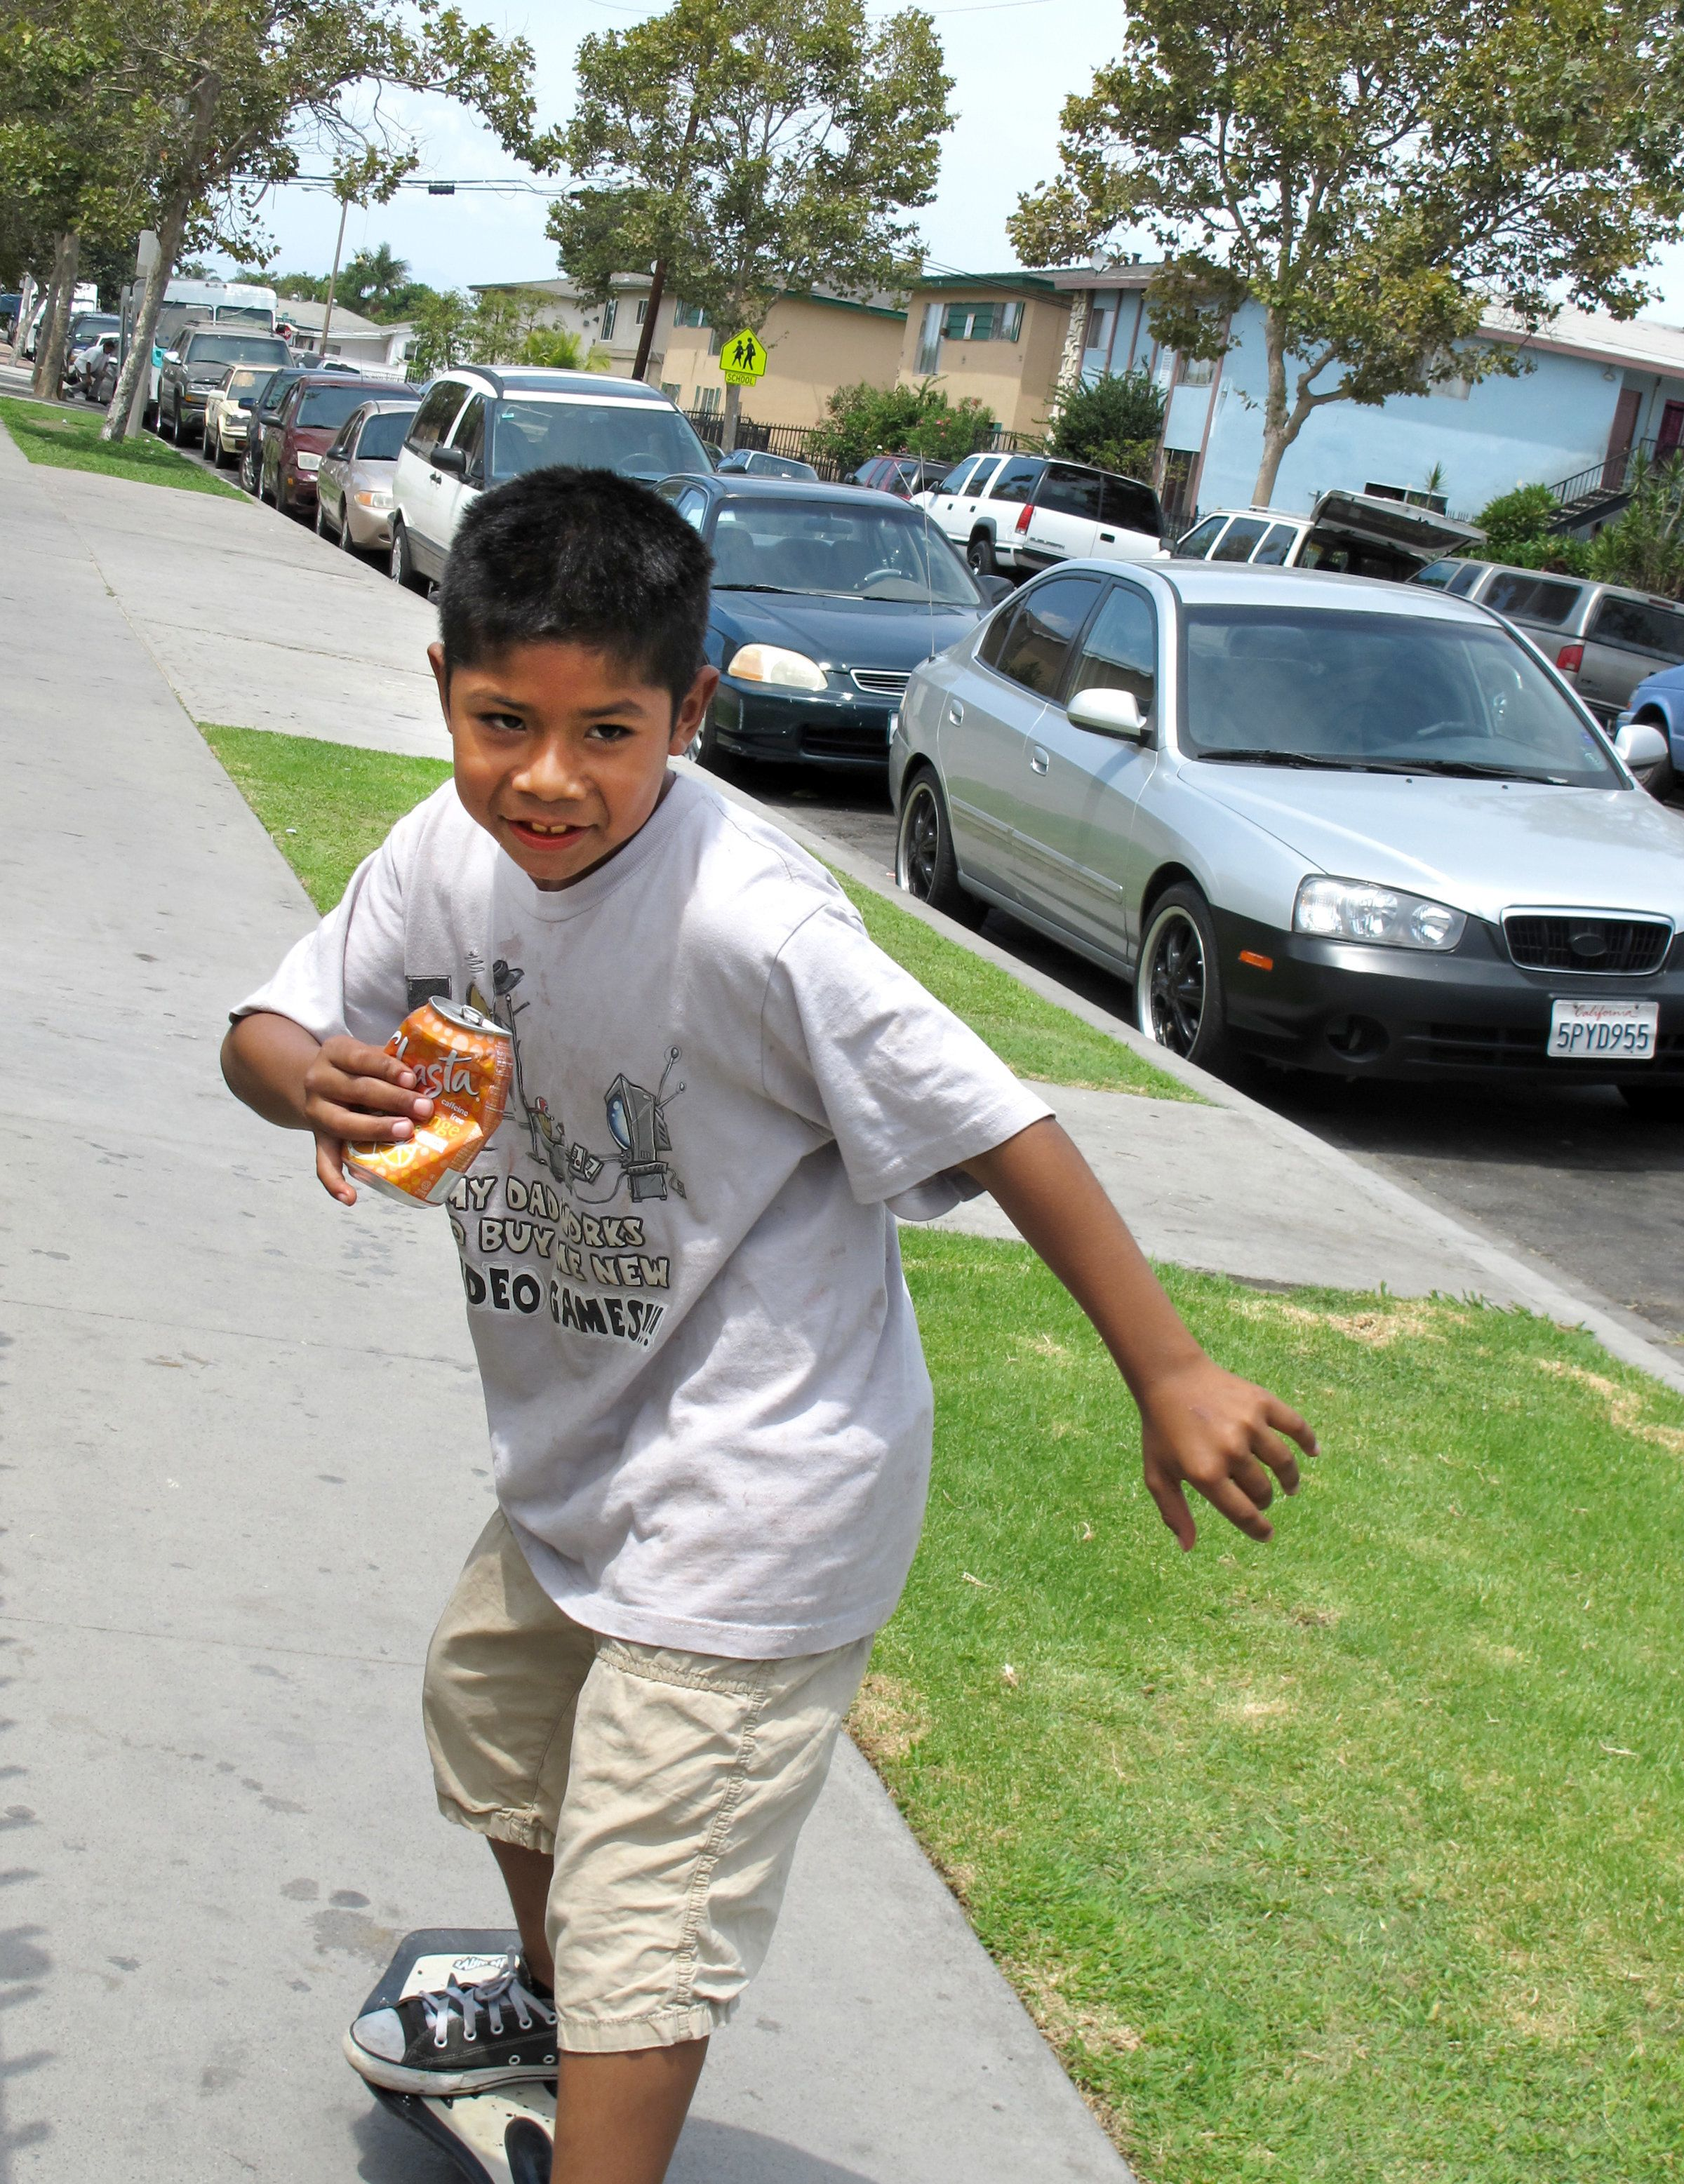 In the summer of 2014, Cesar Gaspar, 8, skateboards through his Townsend Street neighborhood in Santa Ana during a community